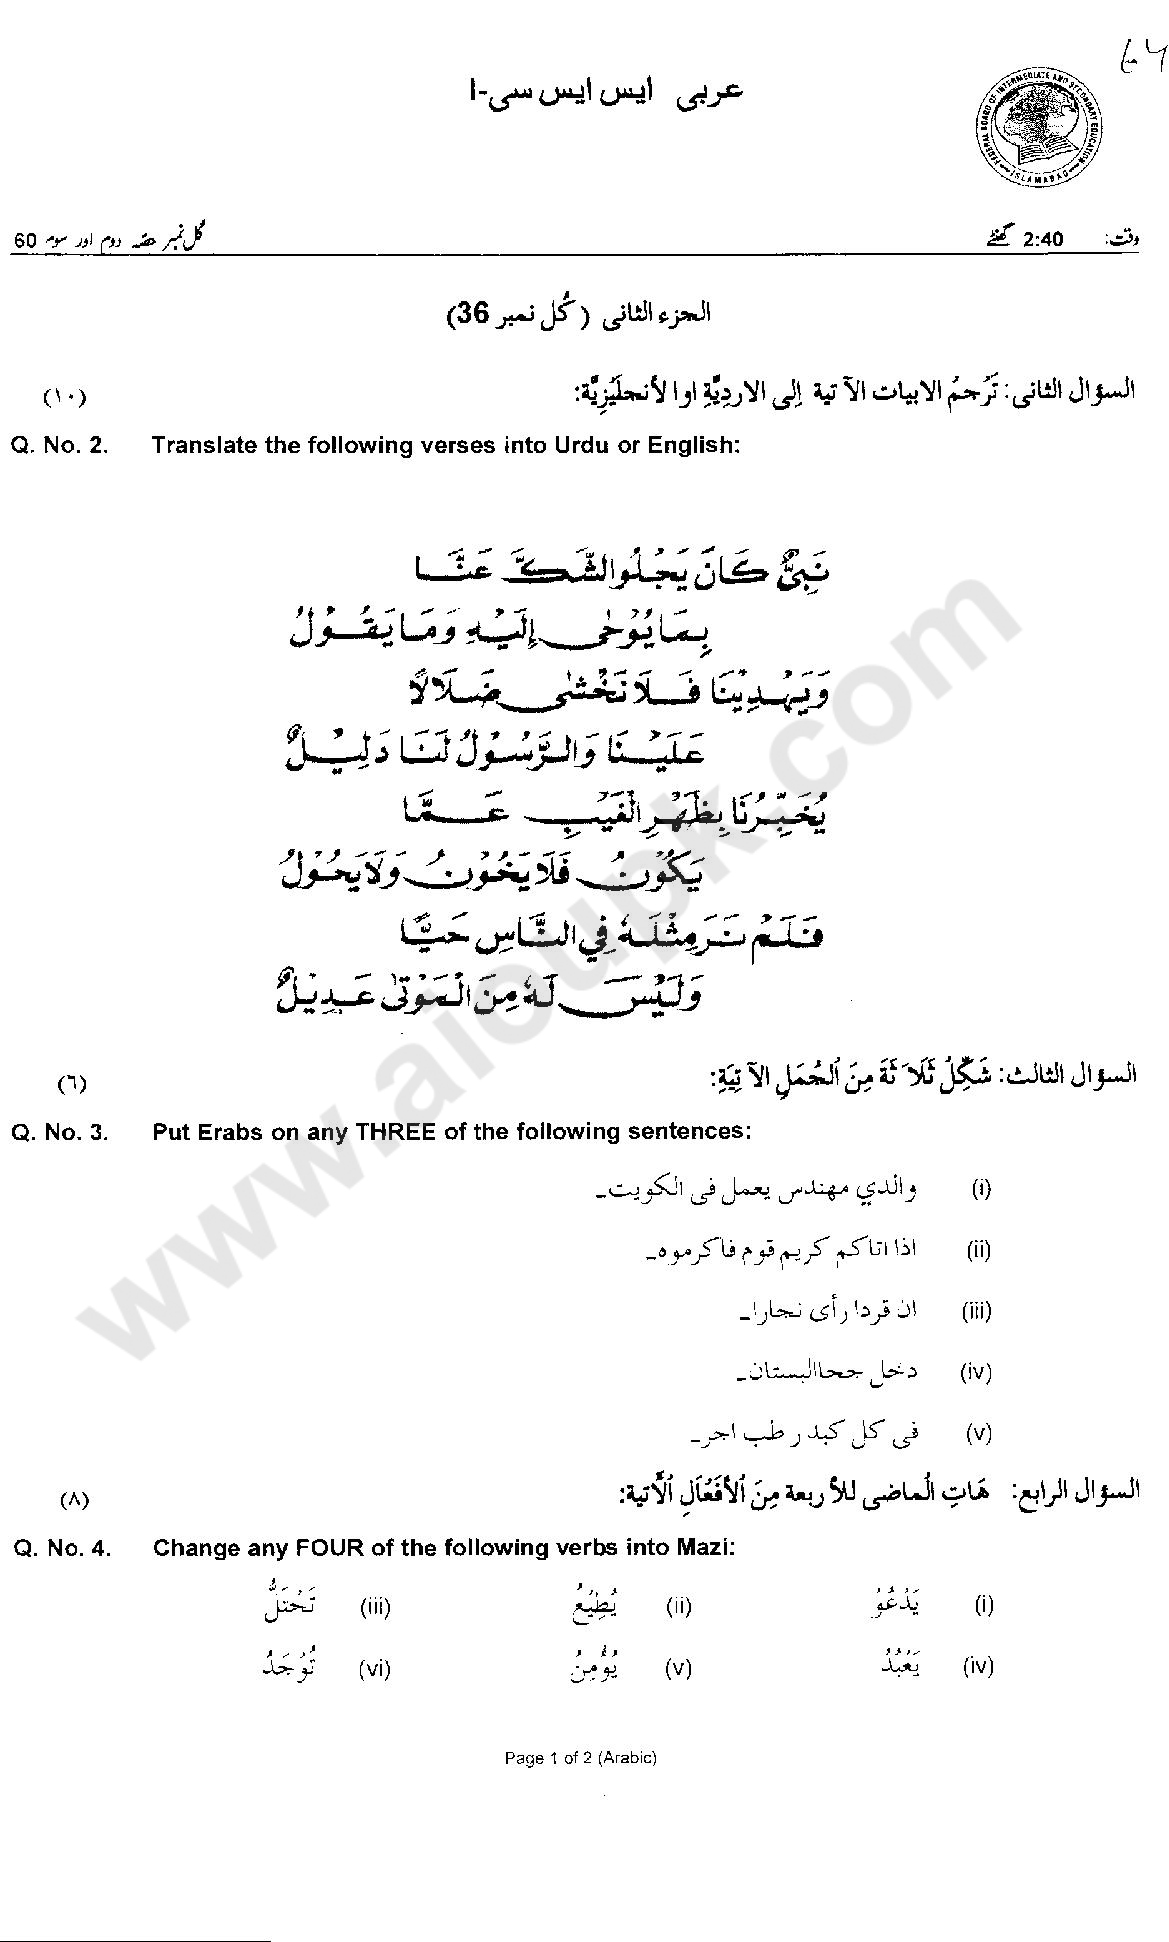 arabic essays Arabic essay on my mother click to continue do my essay now compare and contrast essays for college professional research paper writers cheap cheap college essays buy apa format essay buy apa perhaps the topics for about click to continue order.